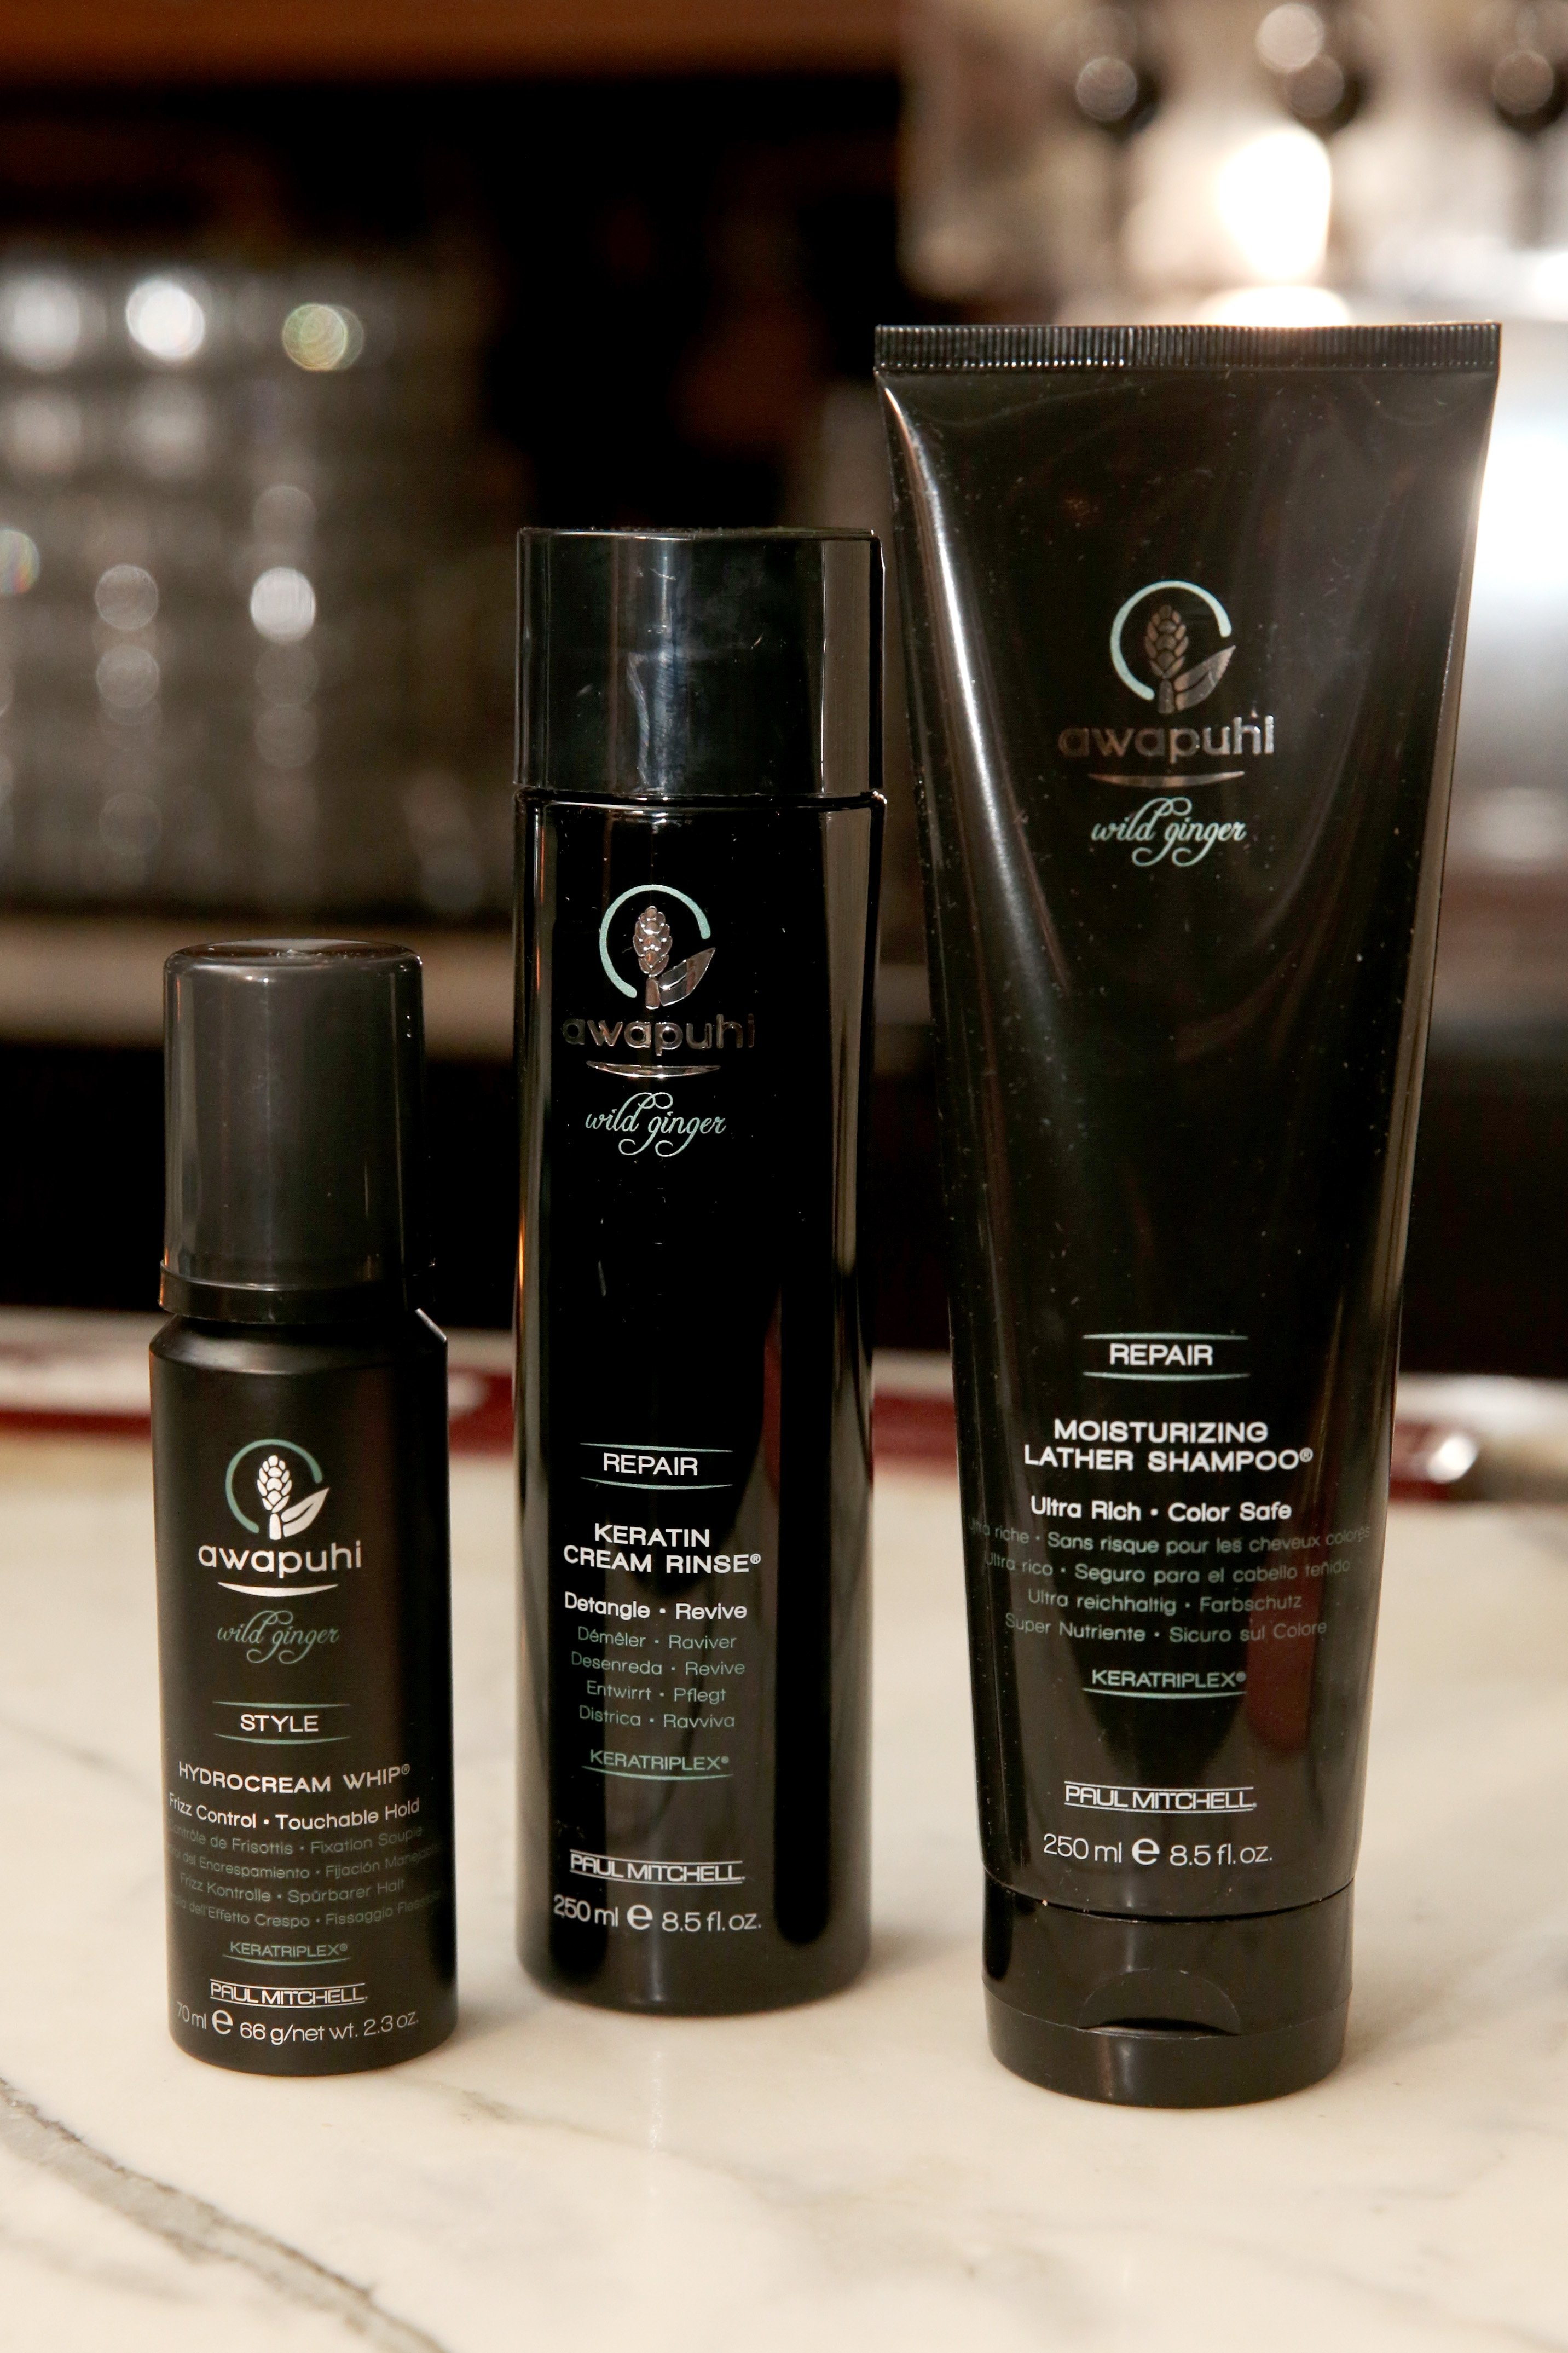 Awapuhi products were used to style the models.